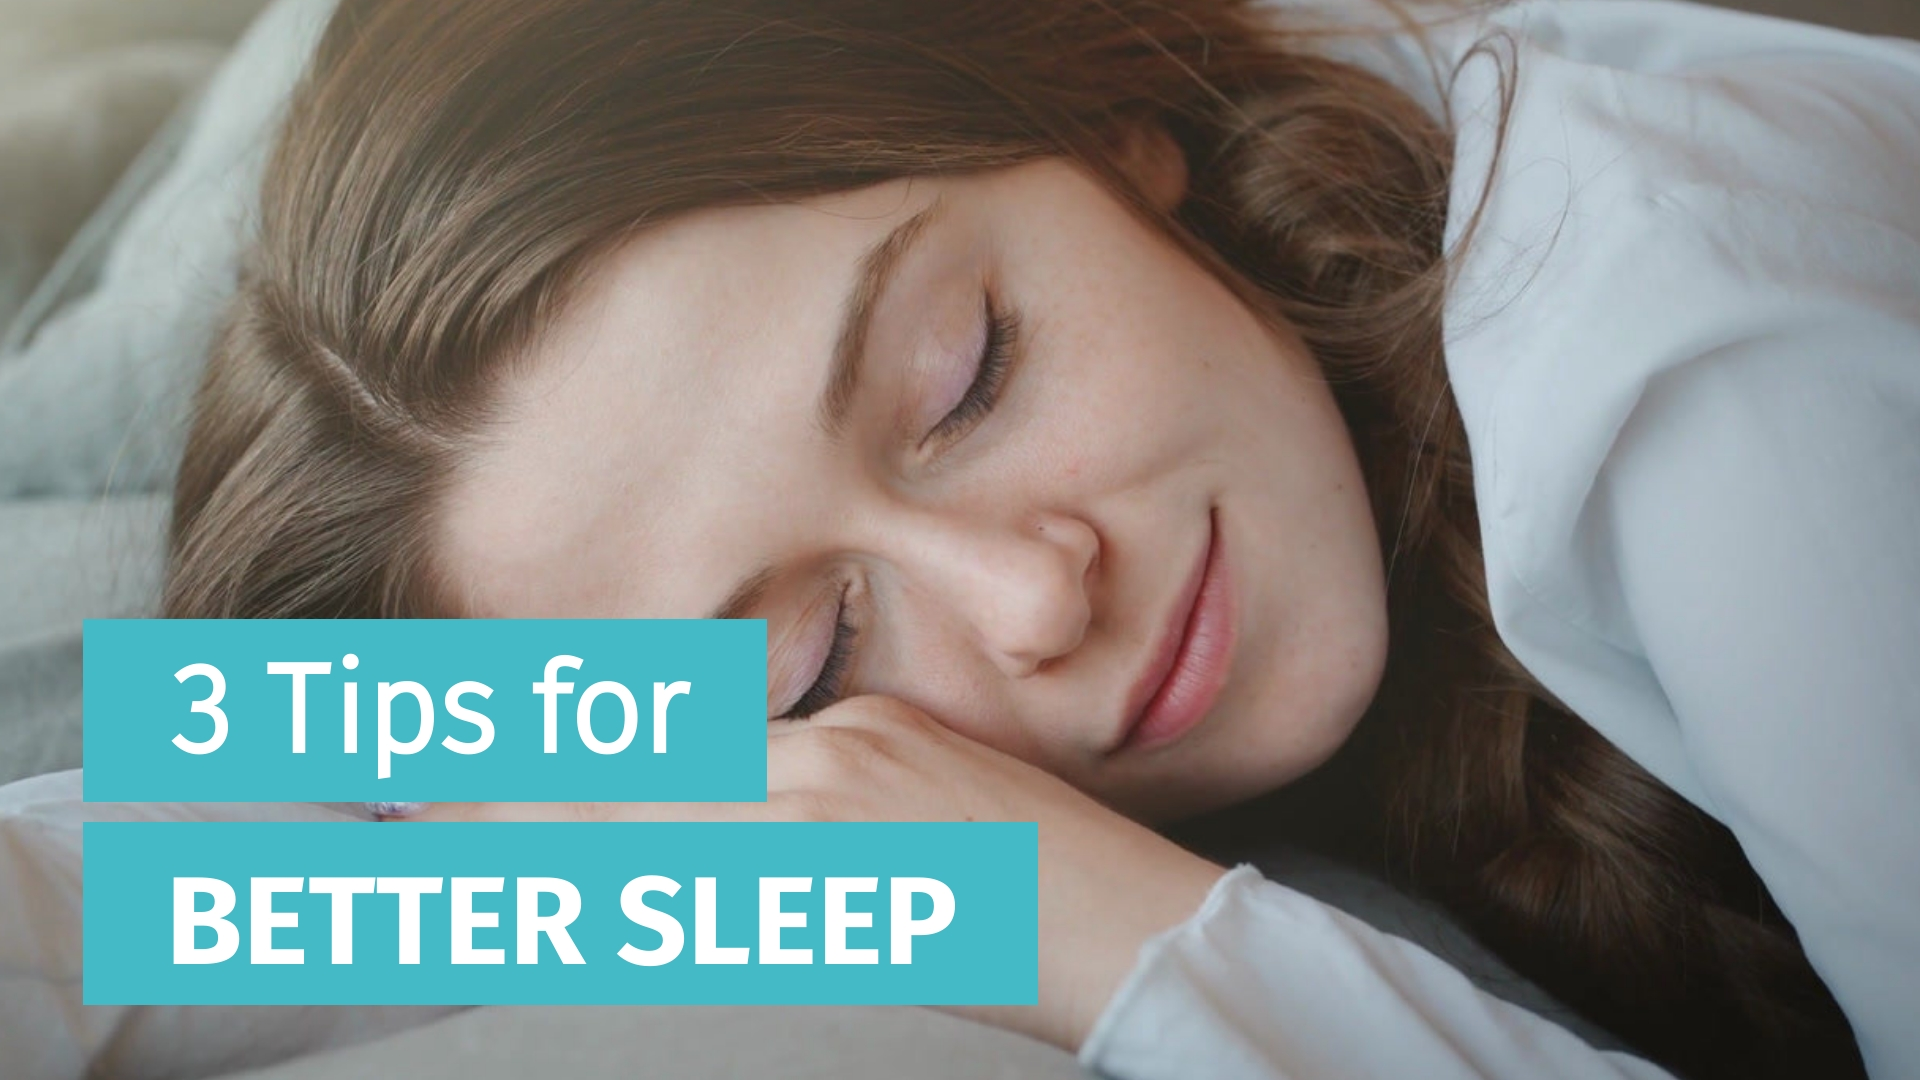 3 Tips for Better Sleep - Listicle Video Template